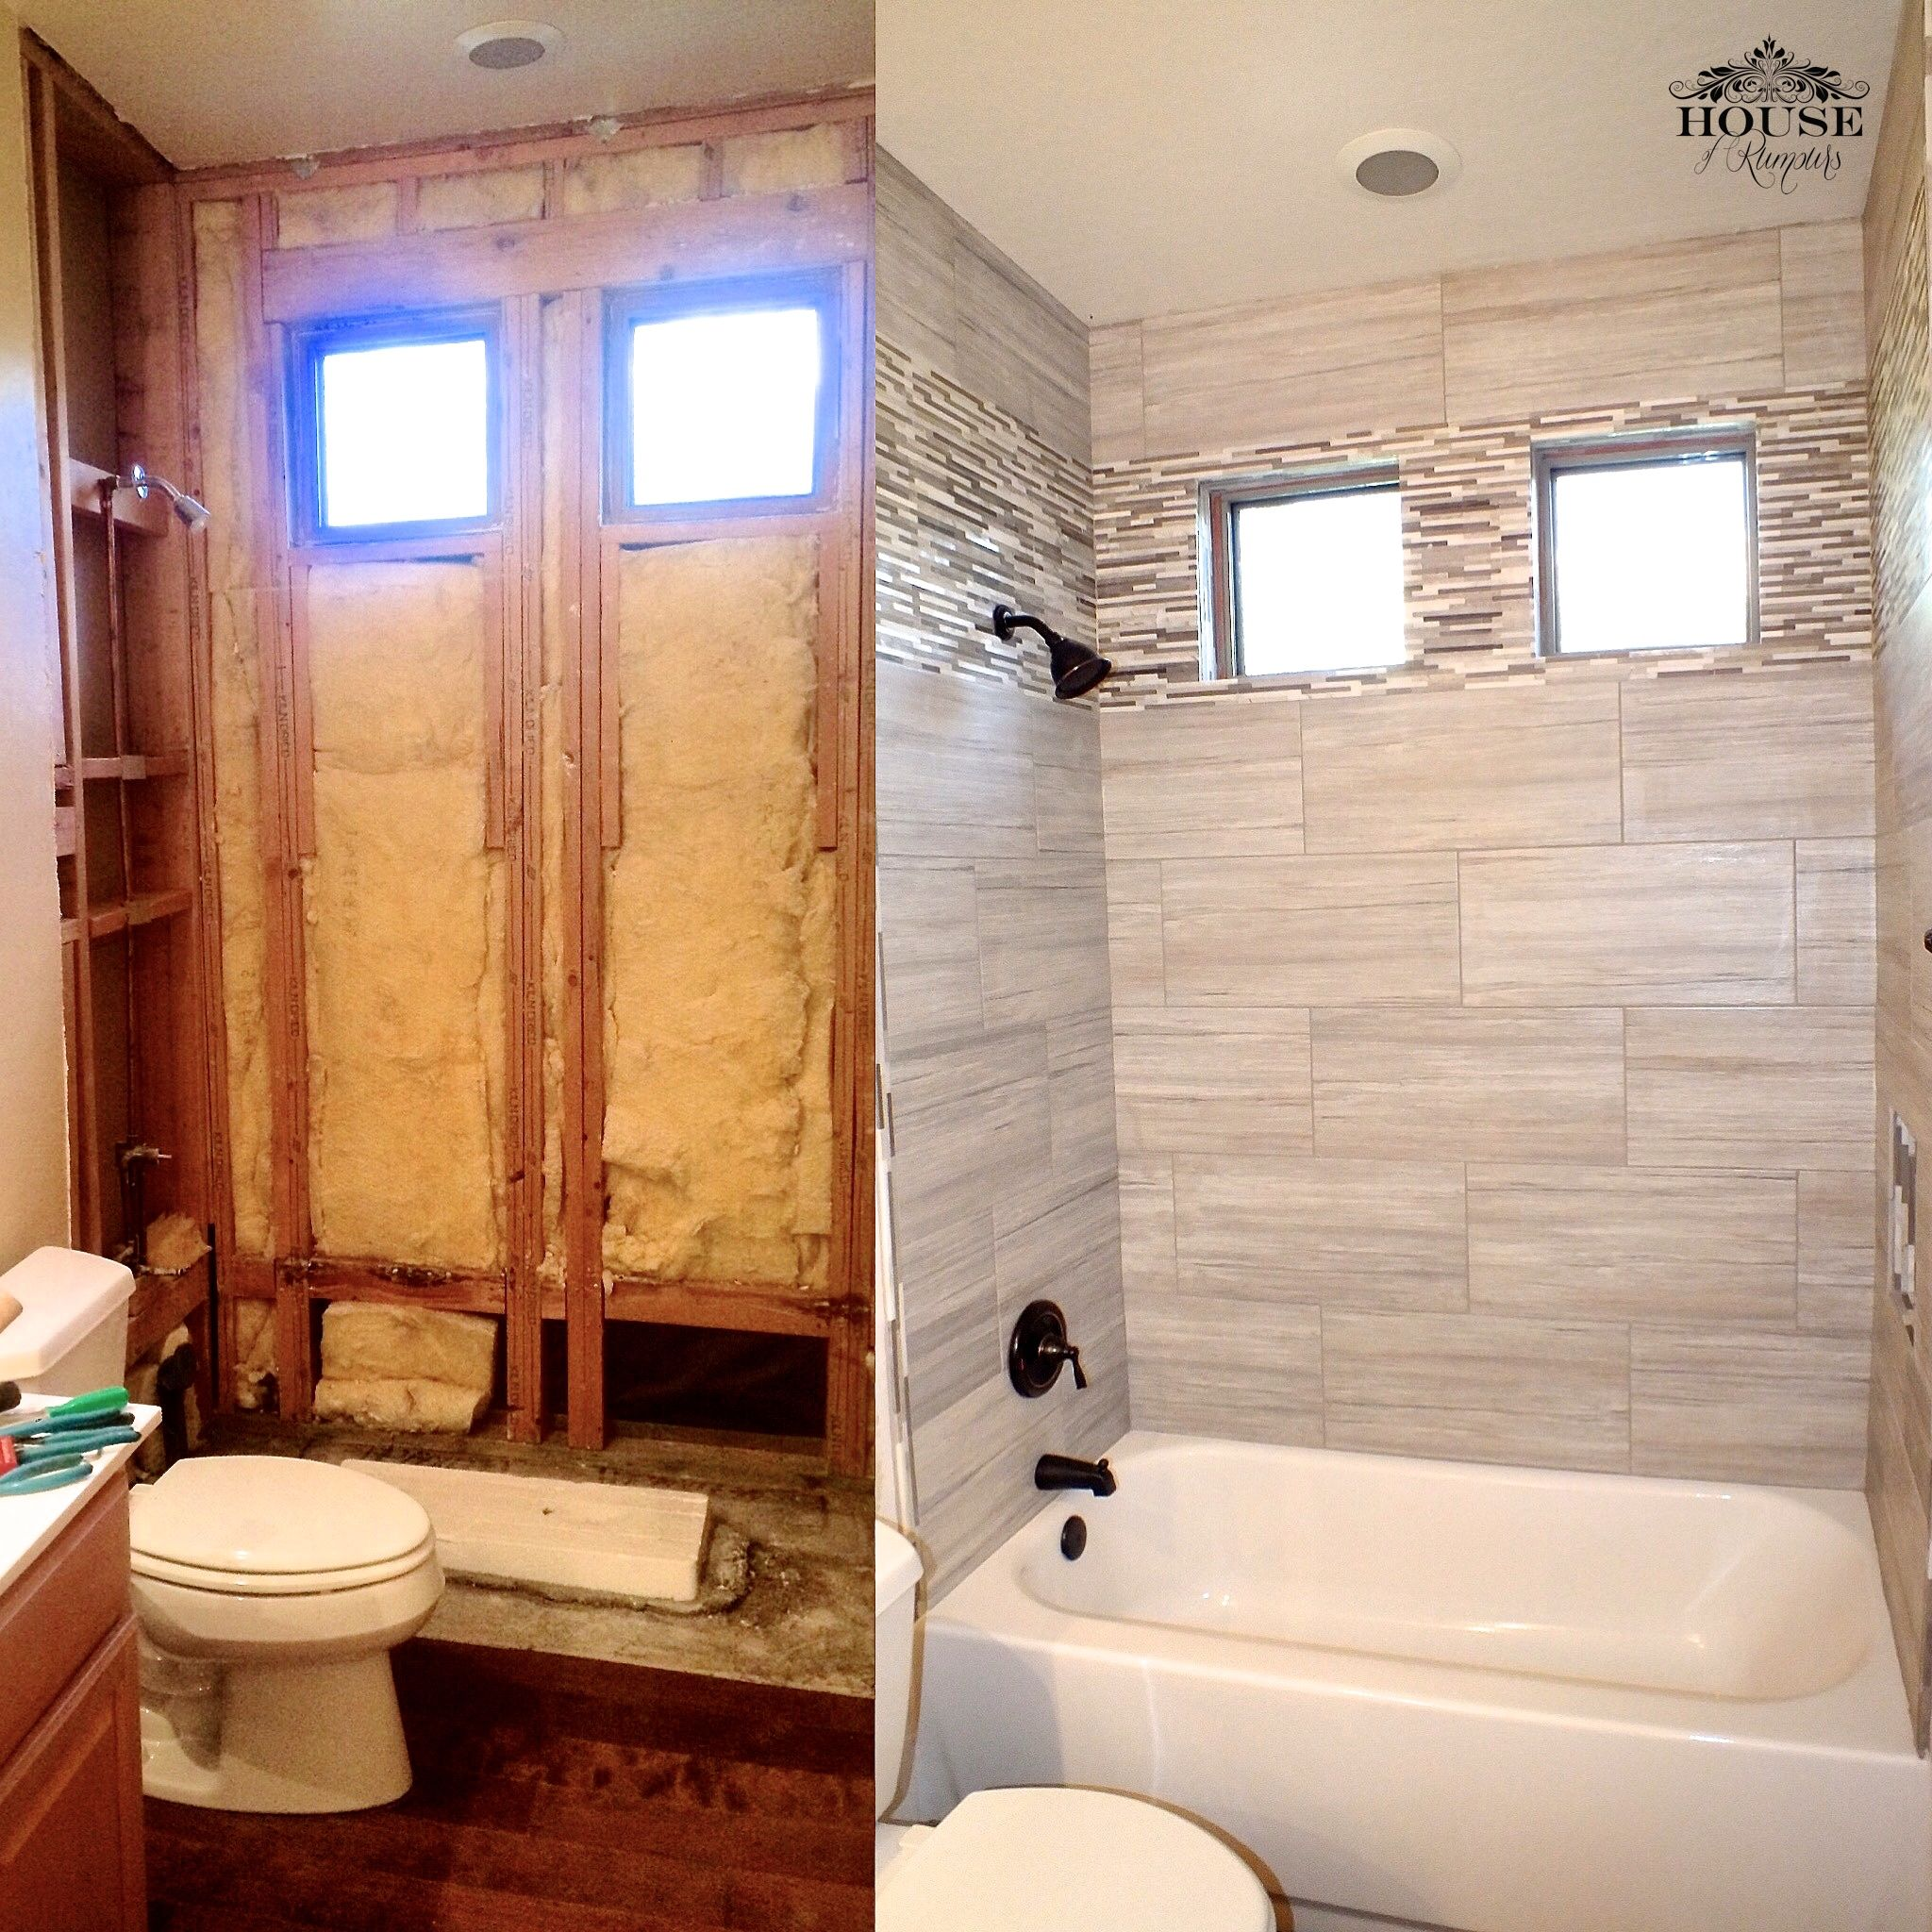 bronze oil wall rings pull mirrors mount mirror rubbed round frameless bathroom ideas sink white rectangular for under